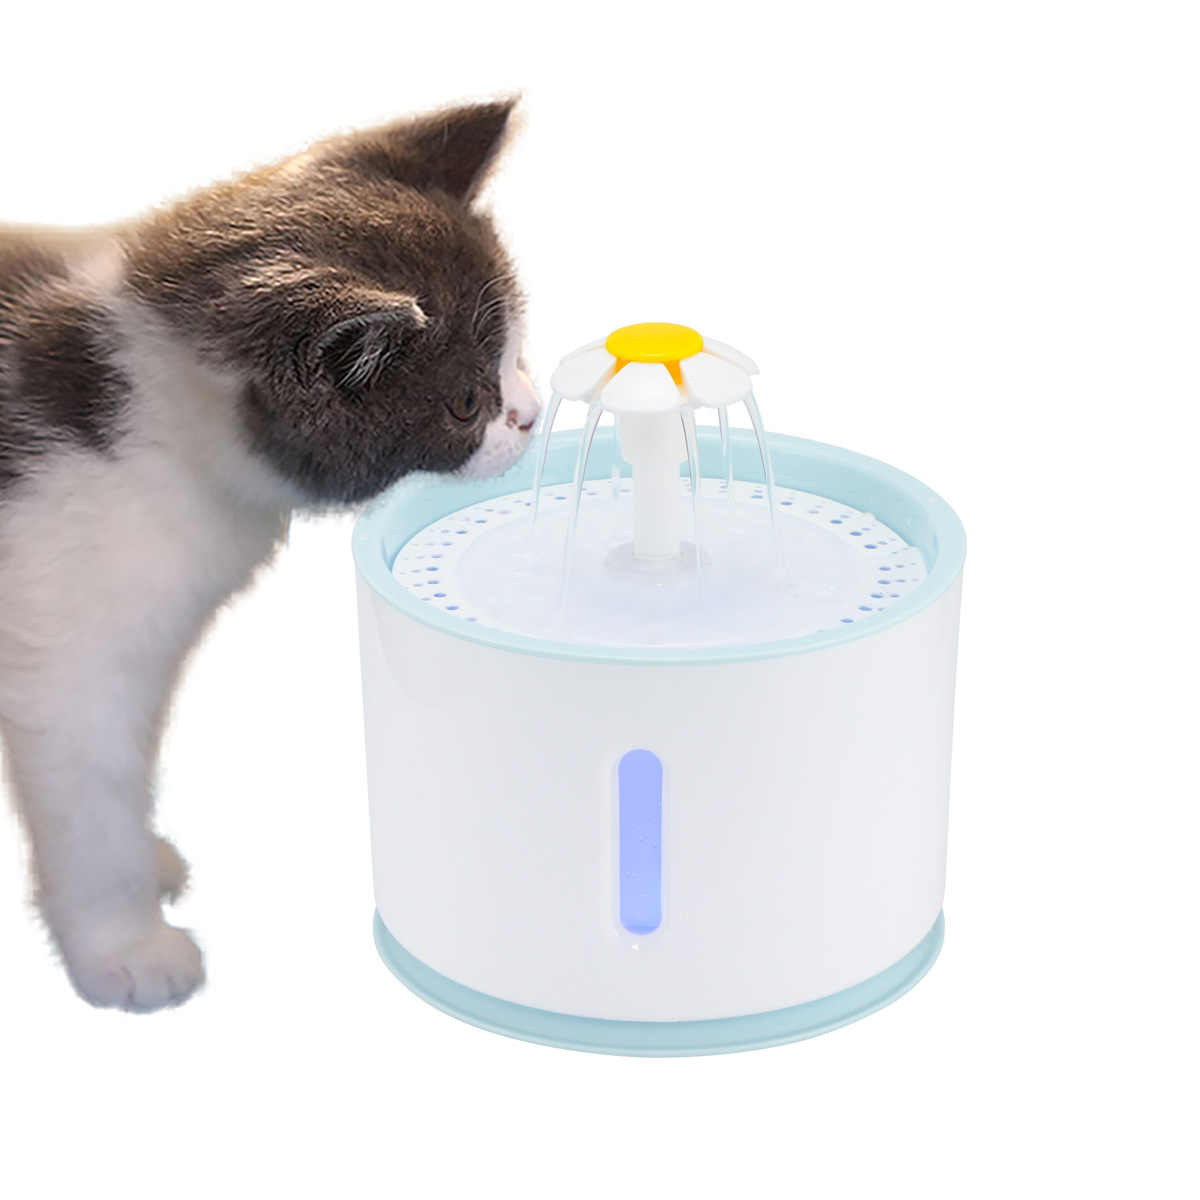 2.4L Automatico Pet Cat Fontana di Acqua con LED Elettrico USB del Gatto Del Cane di Animale Domestico Muto Bevitore Feeder Bowl Pet Fontana con Acqua Potabile dispenser